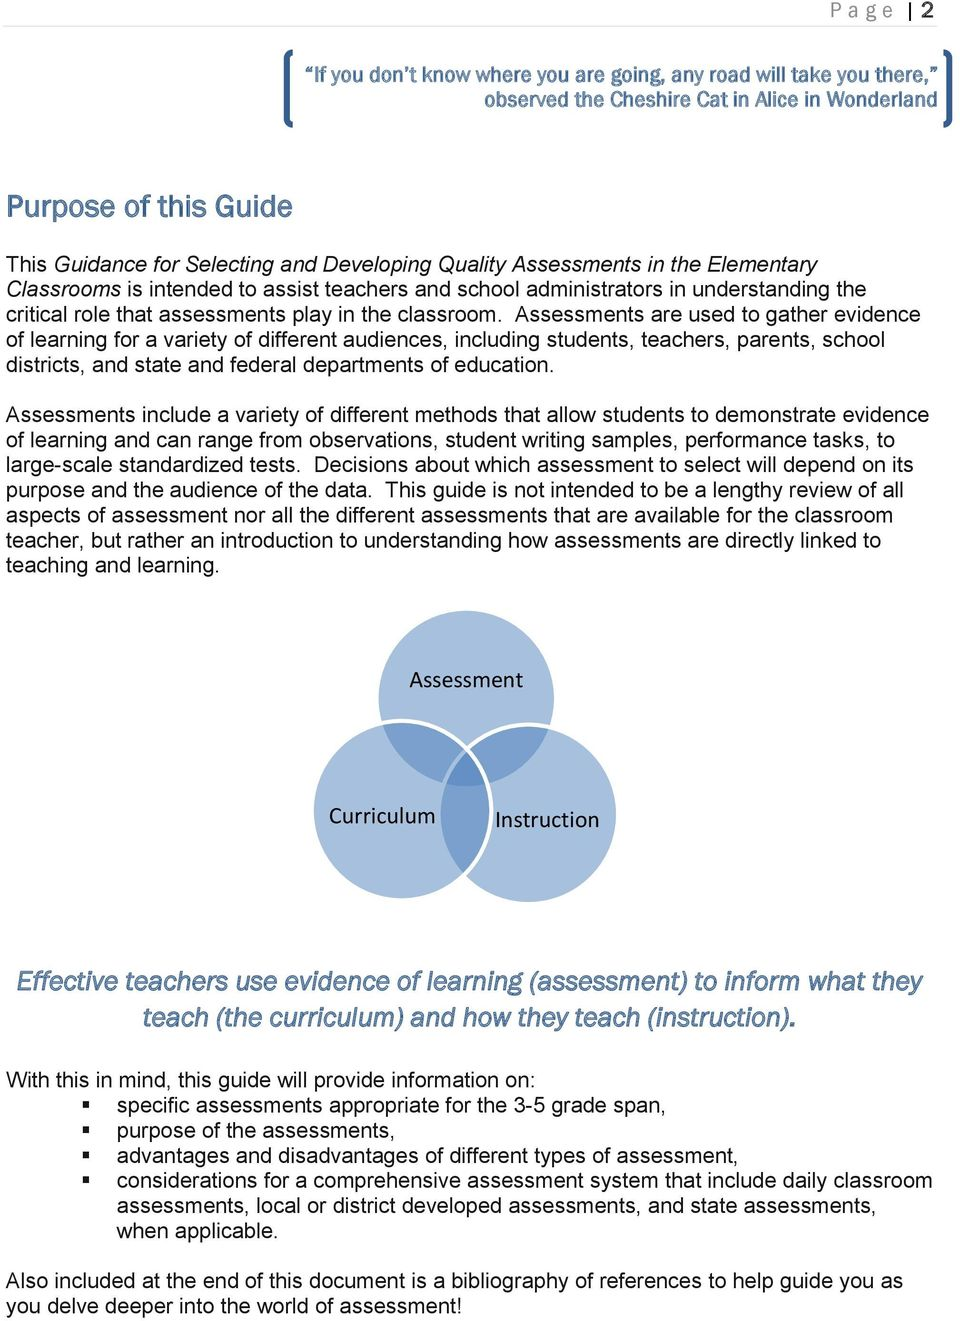 Assessments are used to gather evidence of learning for a variety of different audiences, including students, teachers, parents, school districts, and state and federal departments of education.